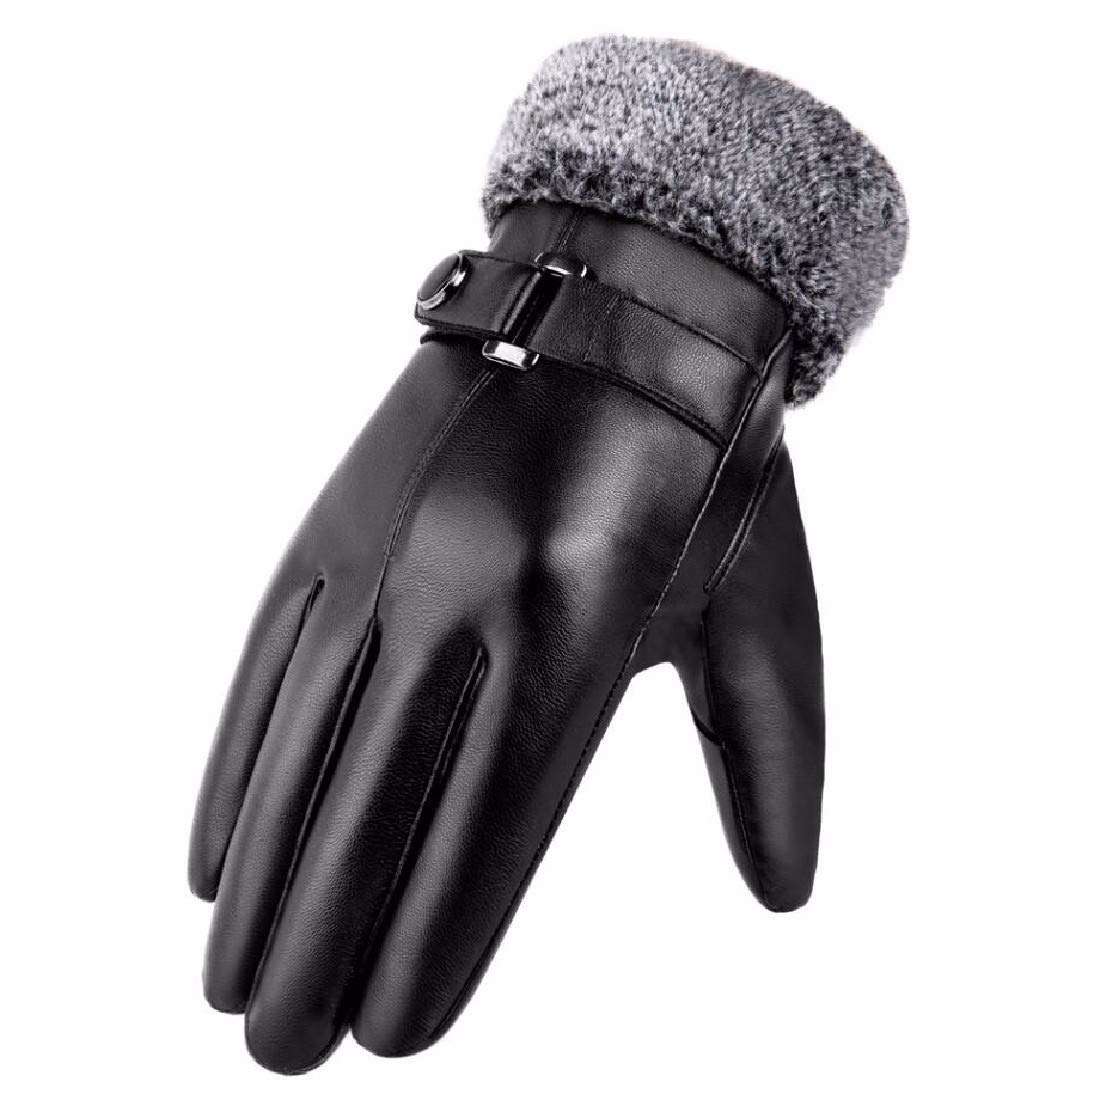 ZPSPZ mens gloves Gloves Weaving and Thickening Warm and Cold-Proof Cotton Gloves for Men Riding in Wind-Proof Touch Screen in Winter